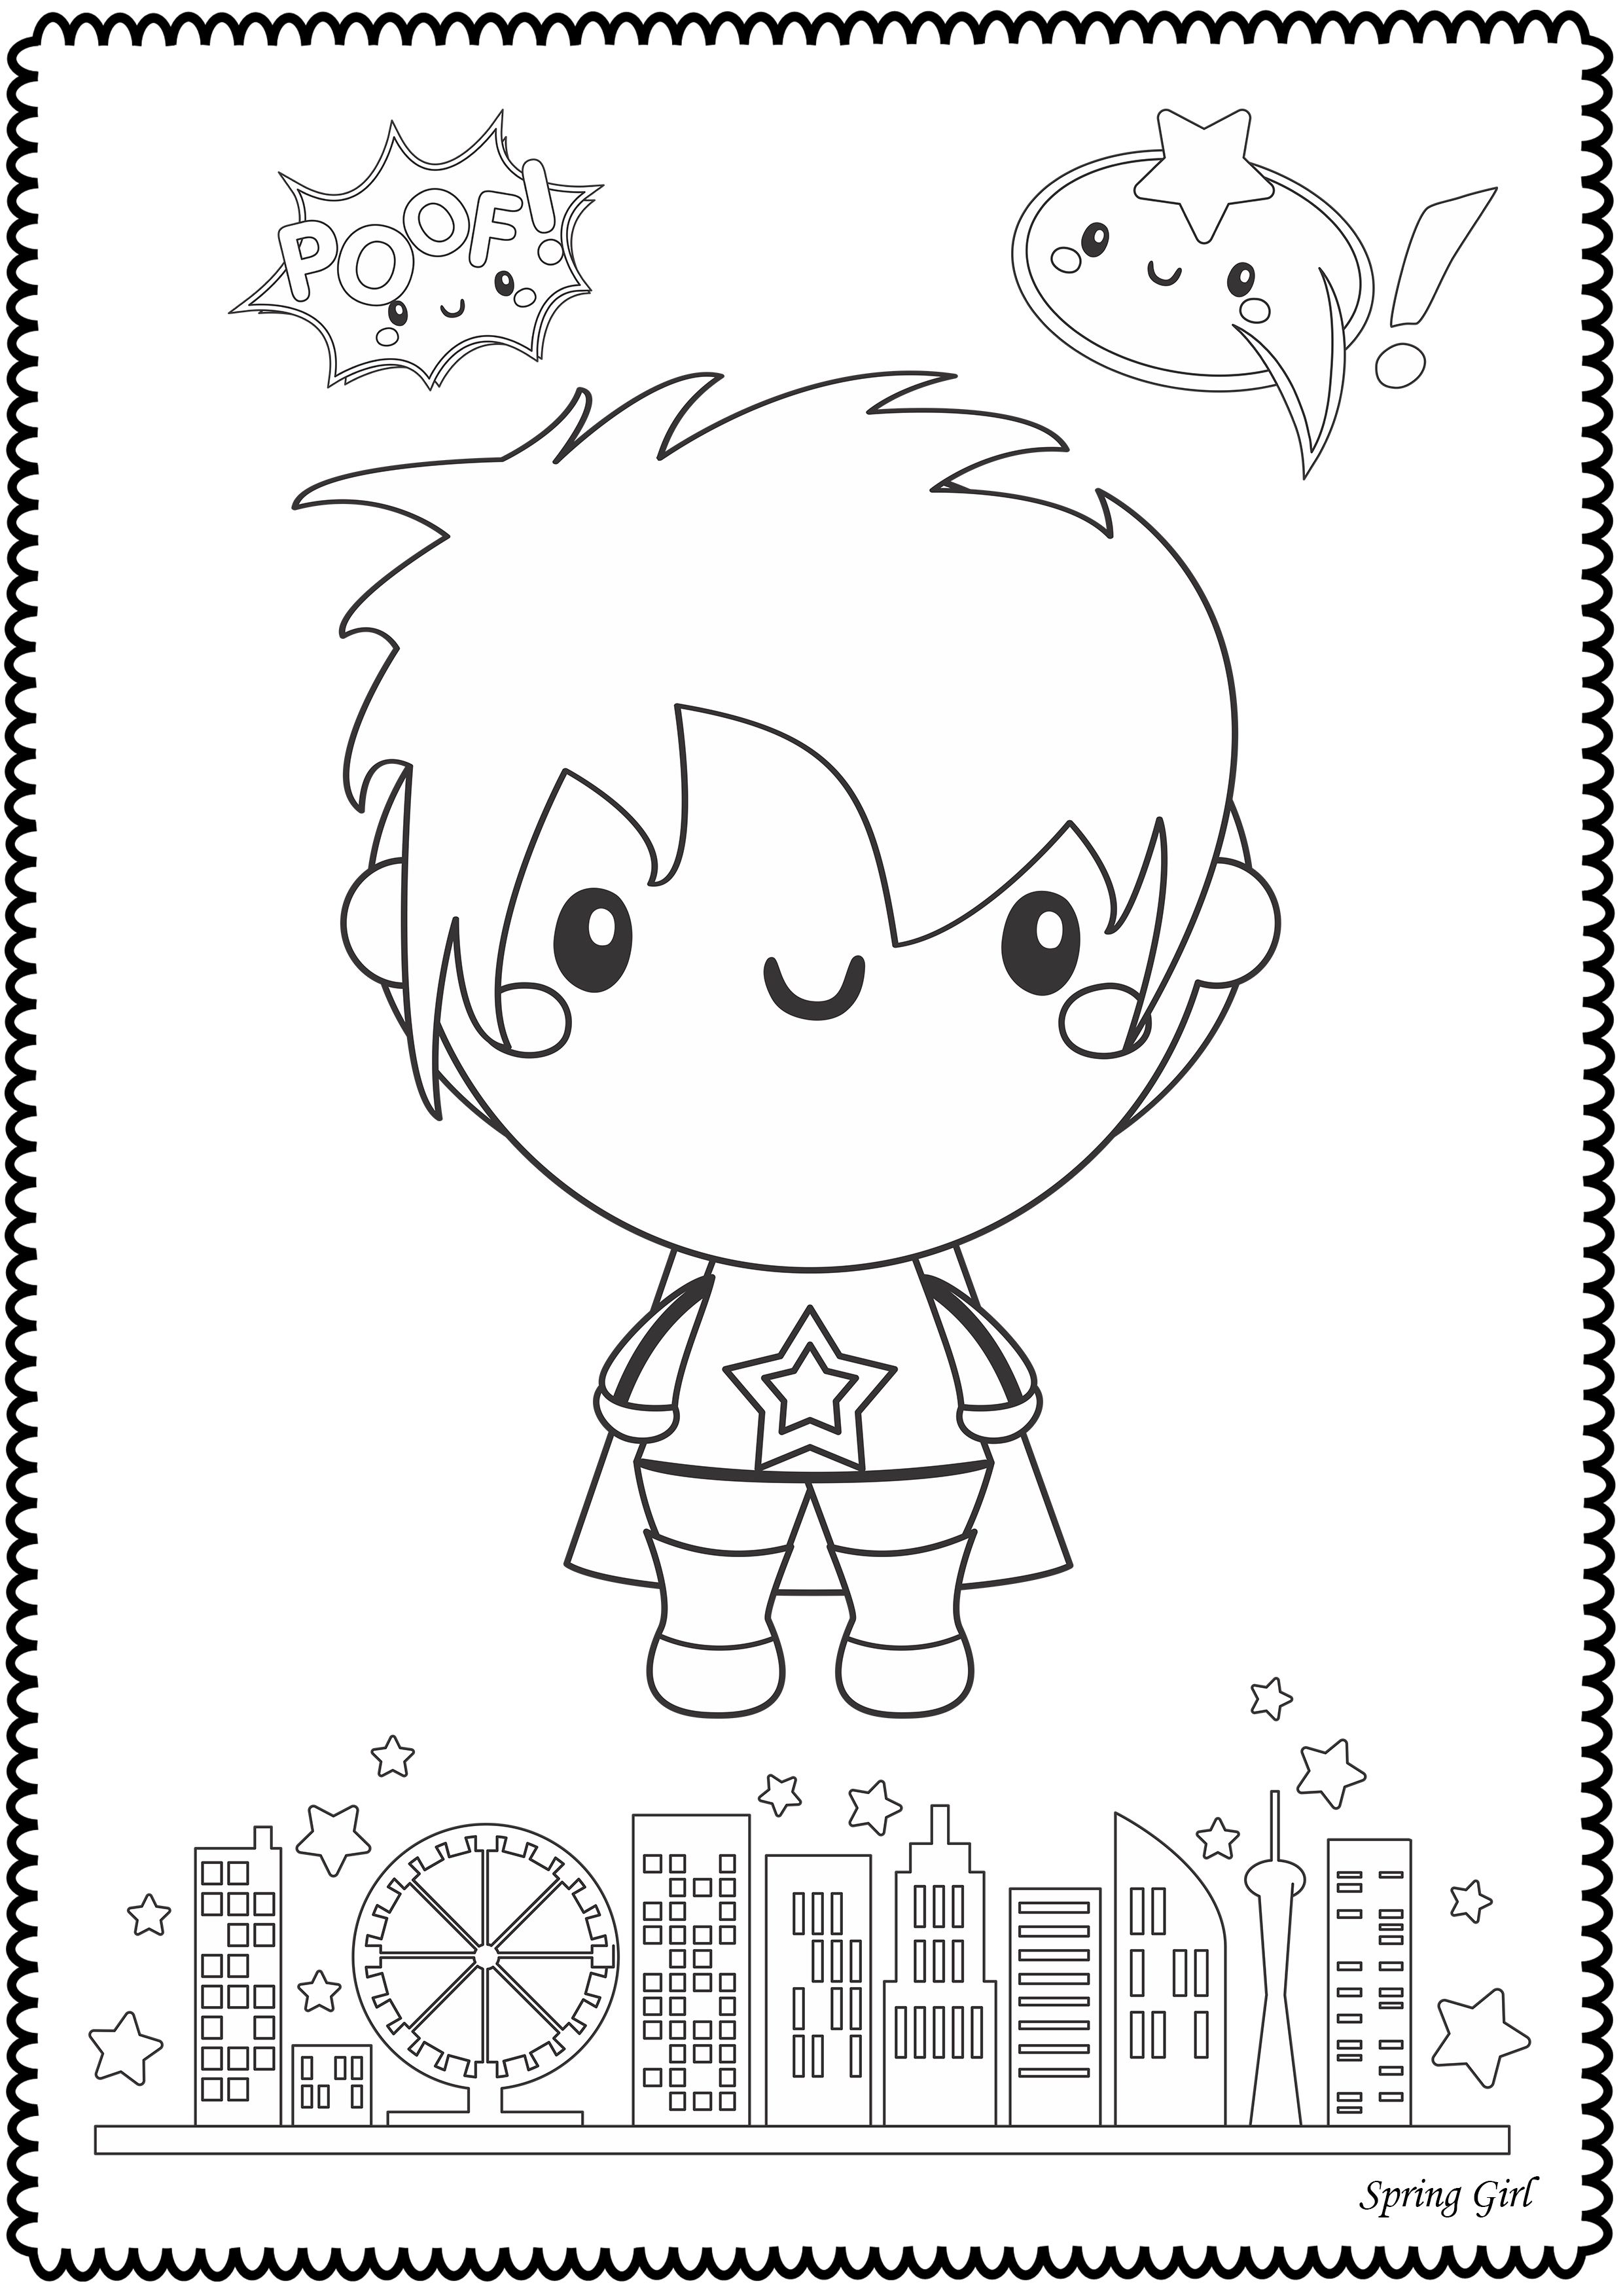 Hero Kids Fairy Tales Coloring Pages In 2020 Fairy Tales For Kids Coloring Pages Fairy Tales